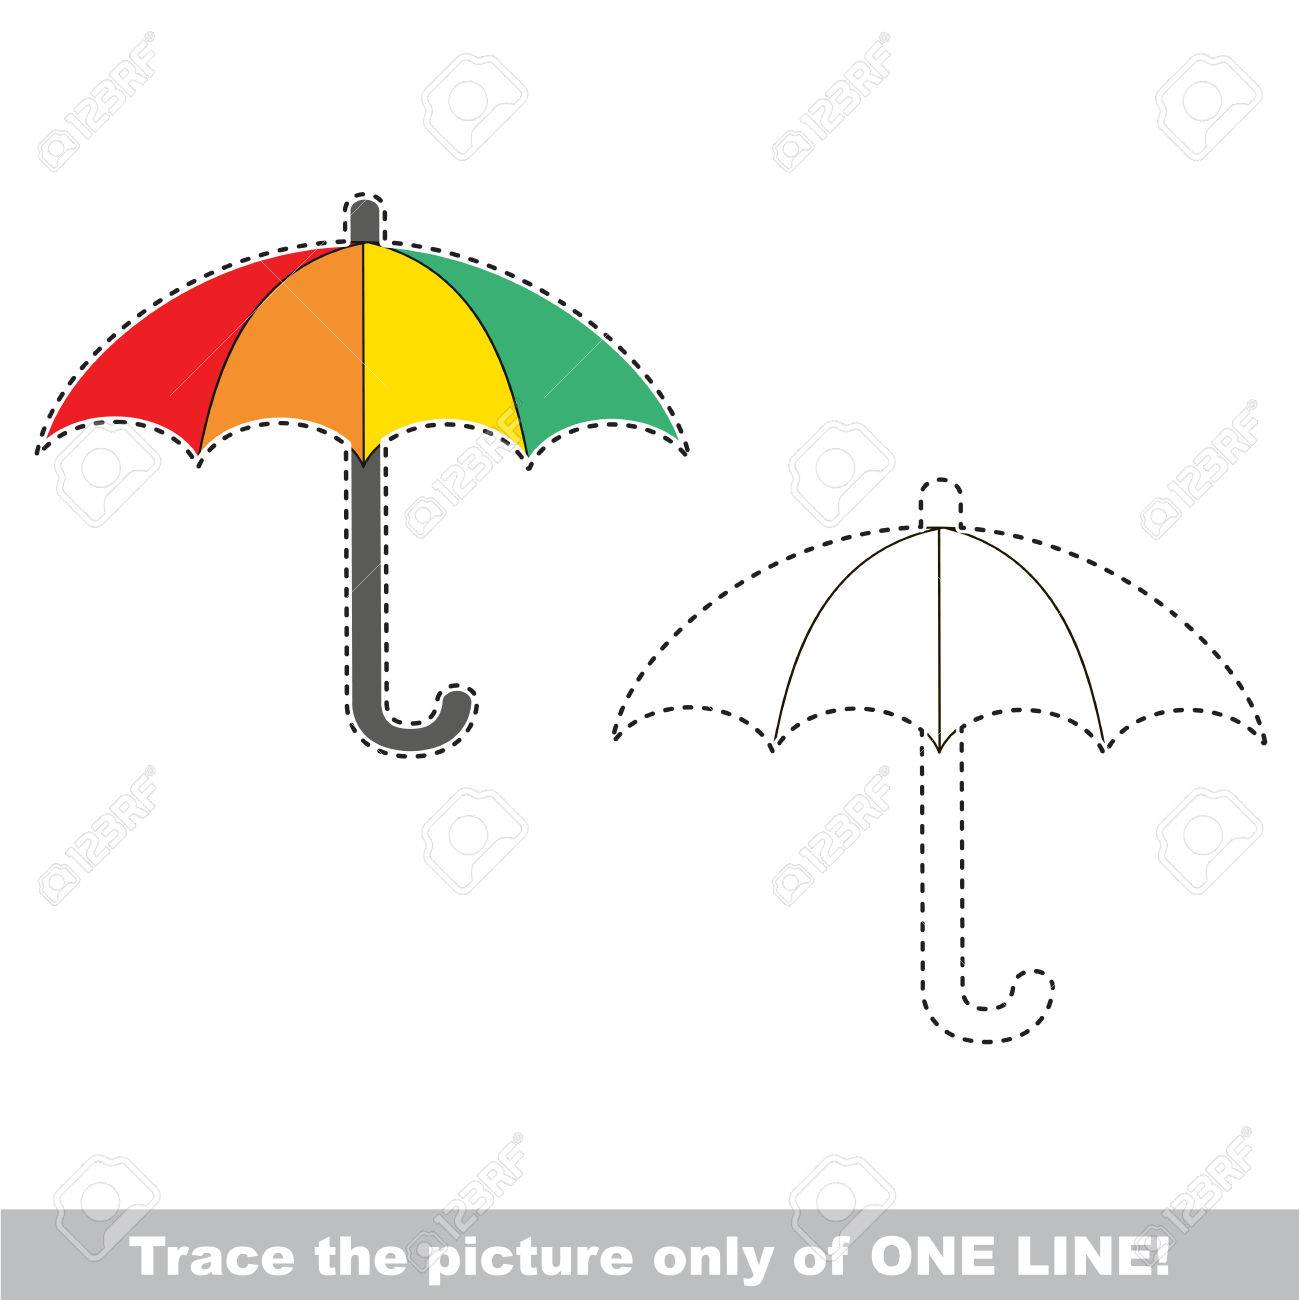 Umbrella dot to dot educational game for kids the one line dot to dot educational game for kids the one line tracing page buycottarizona Image collections